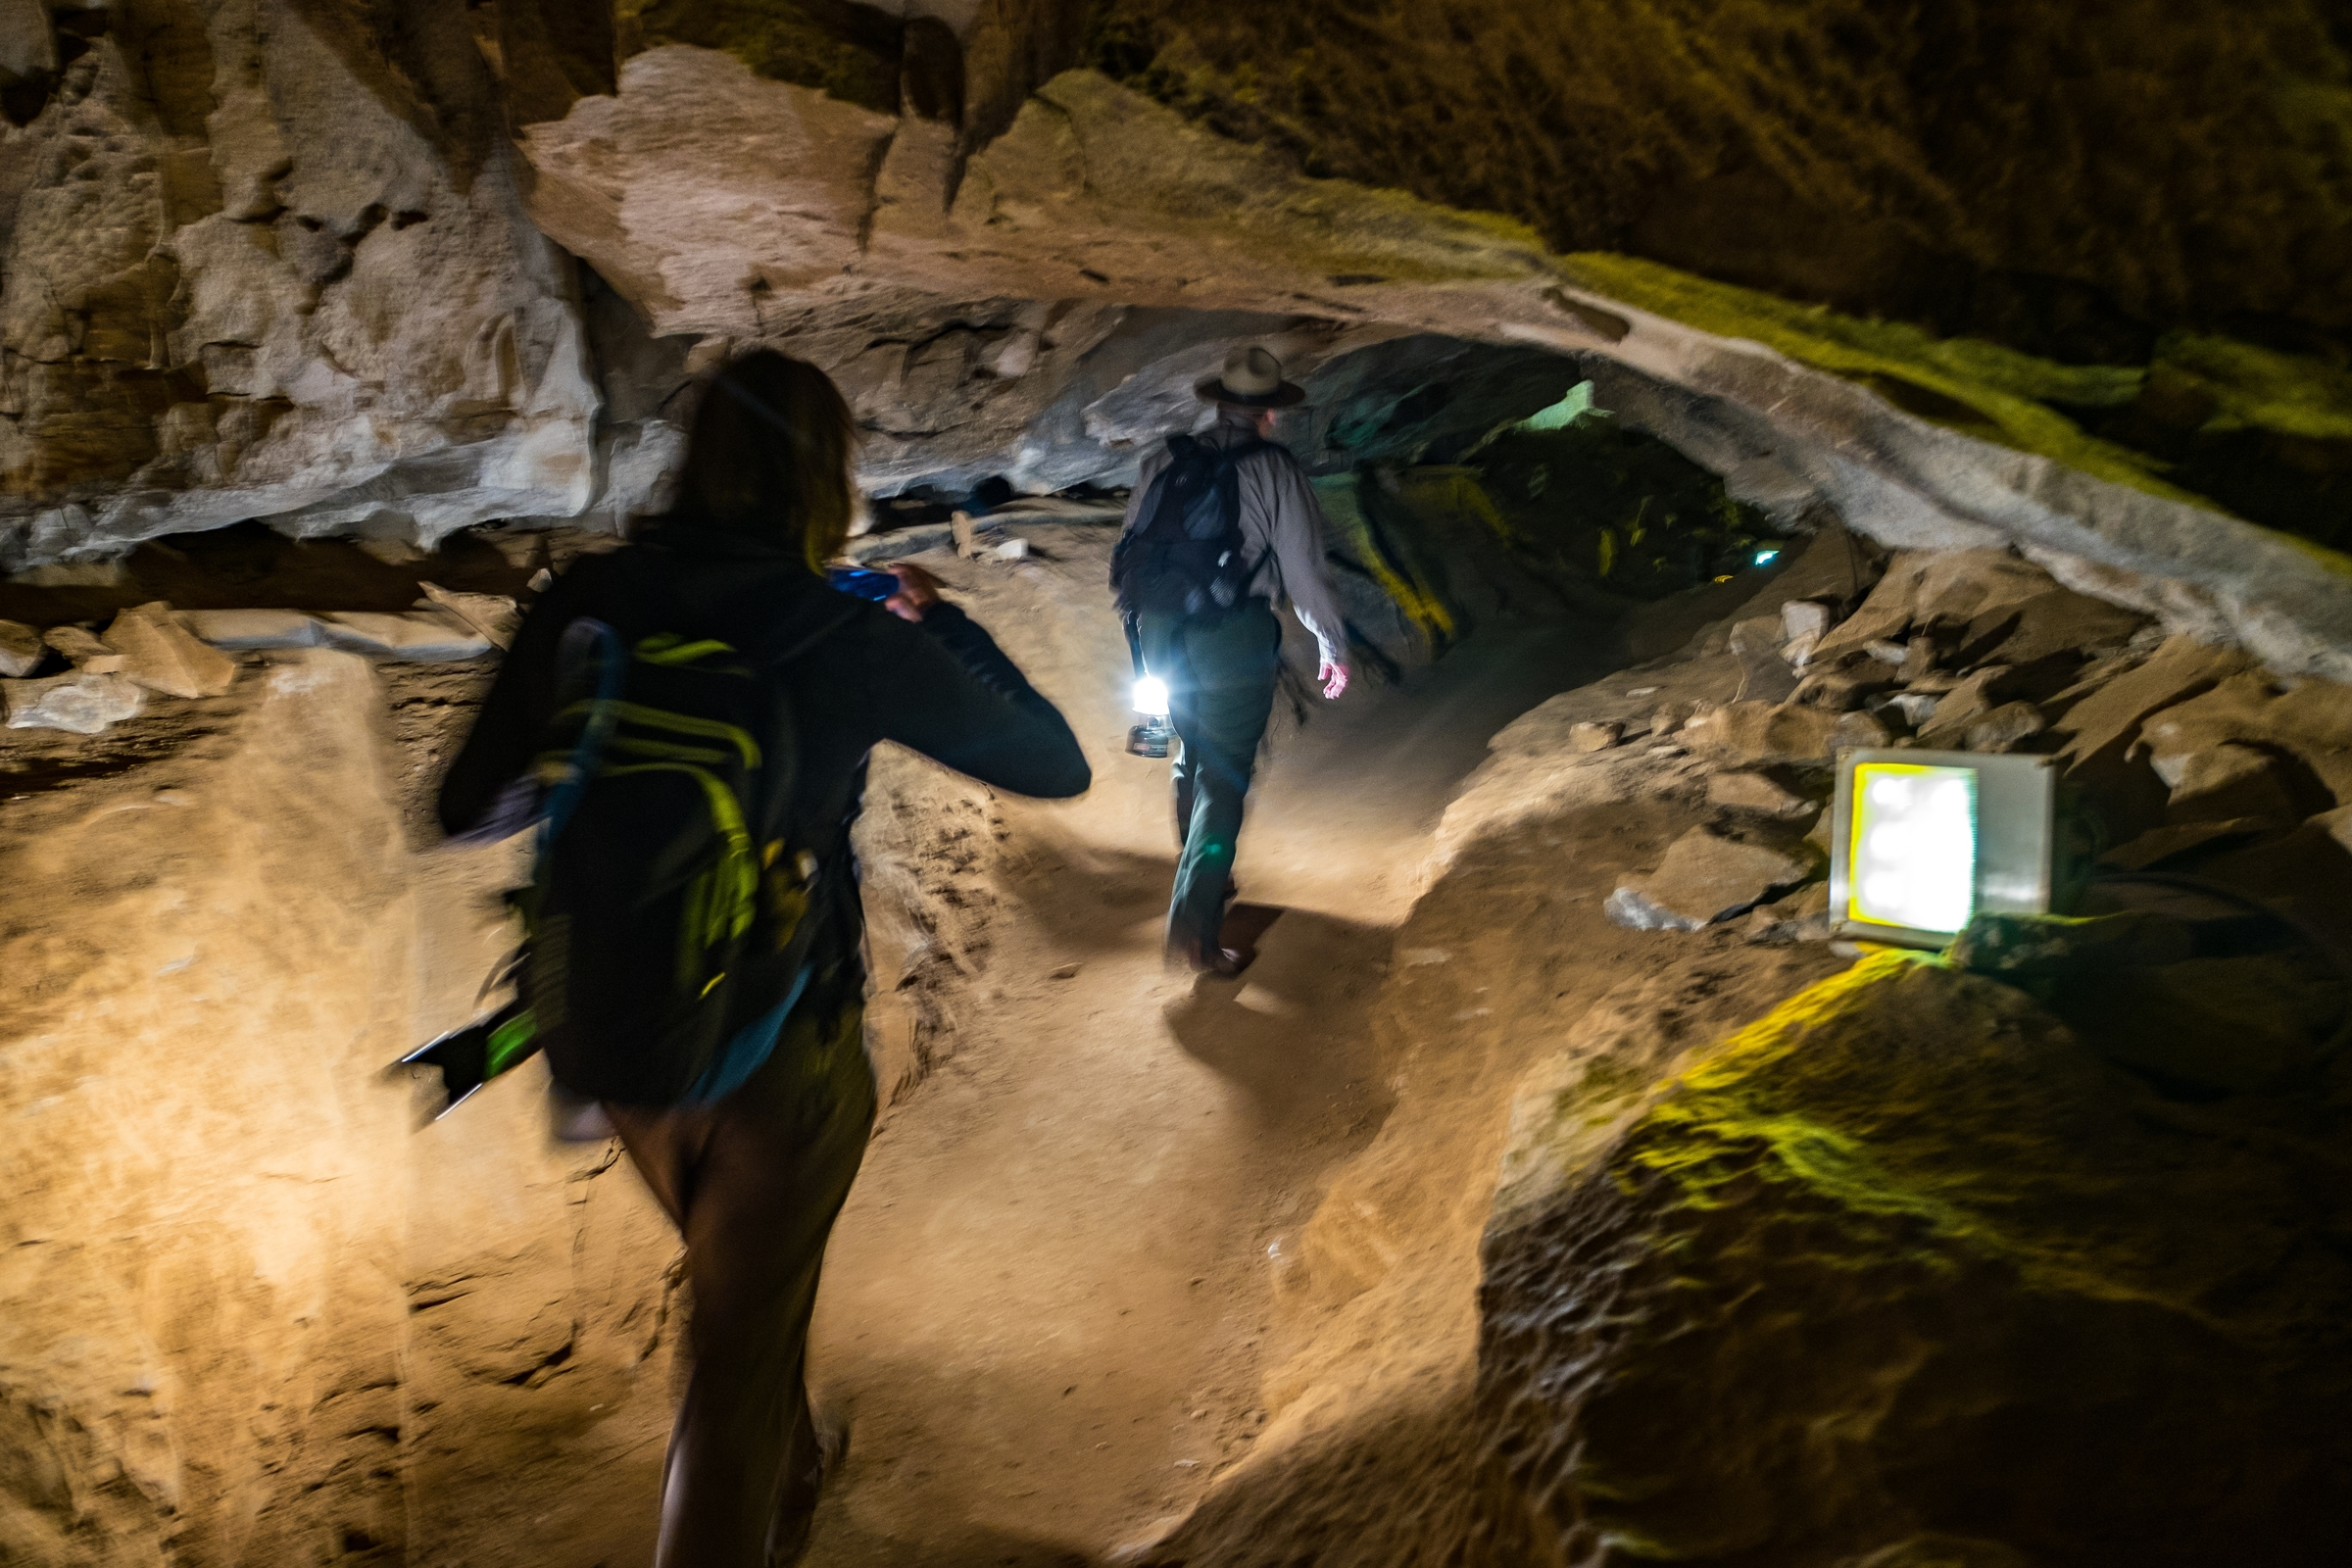 Stef follows Ranger Jackie as he leads the way into the cave.